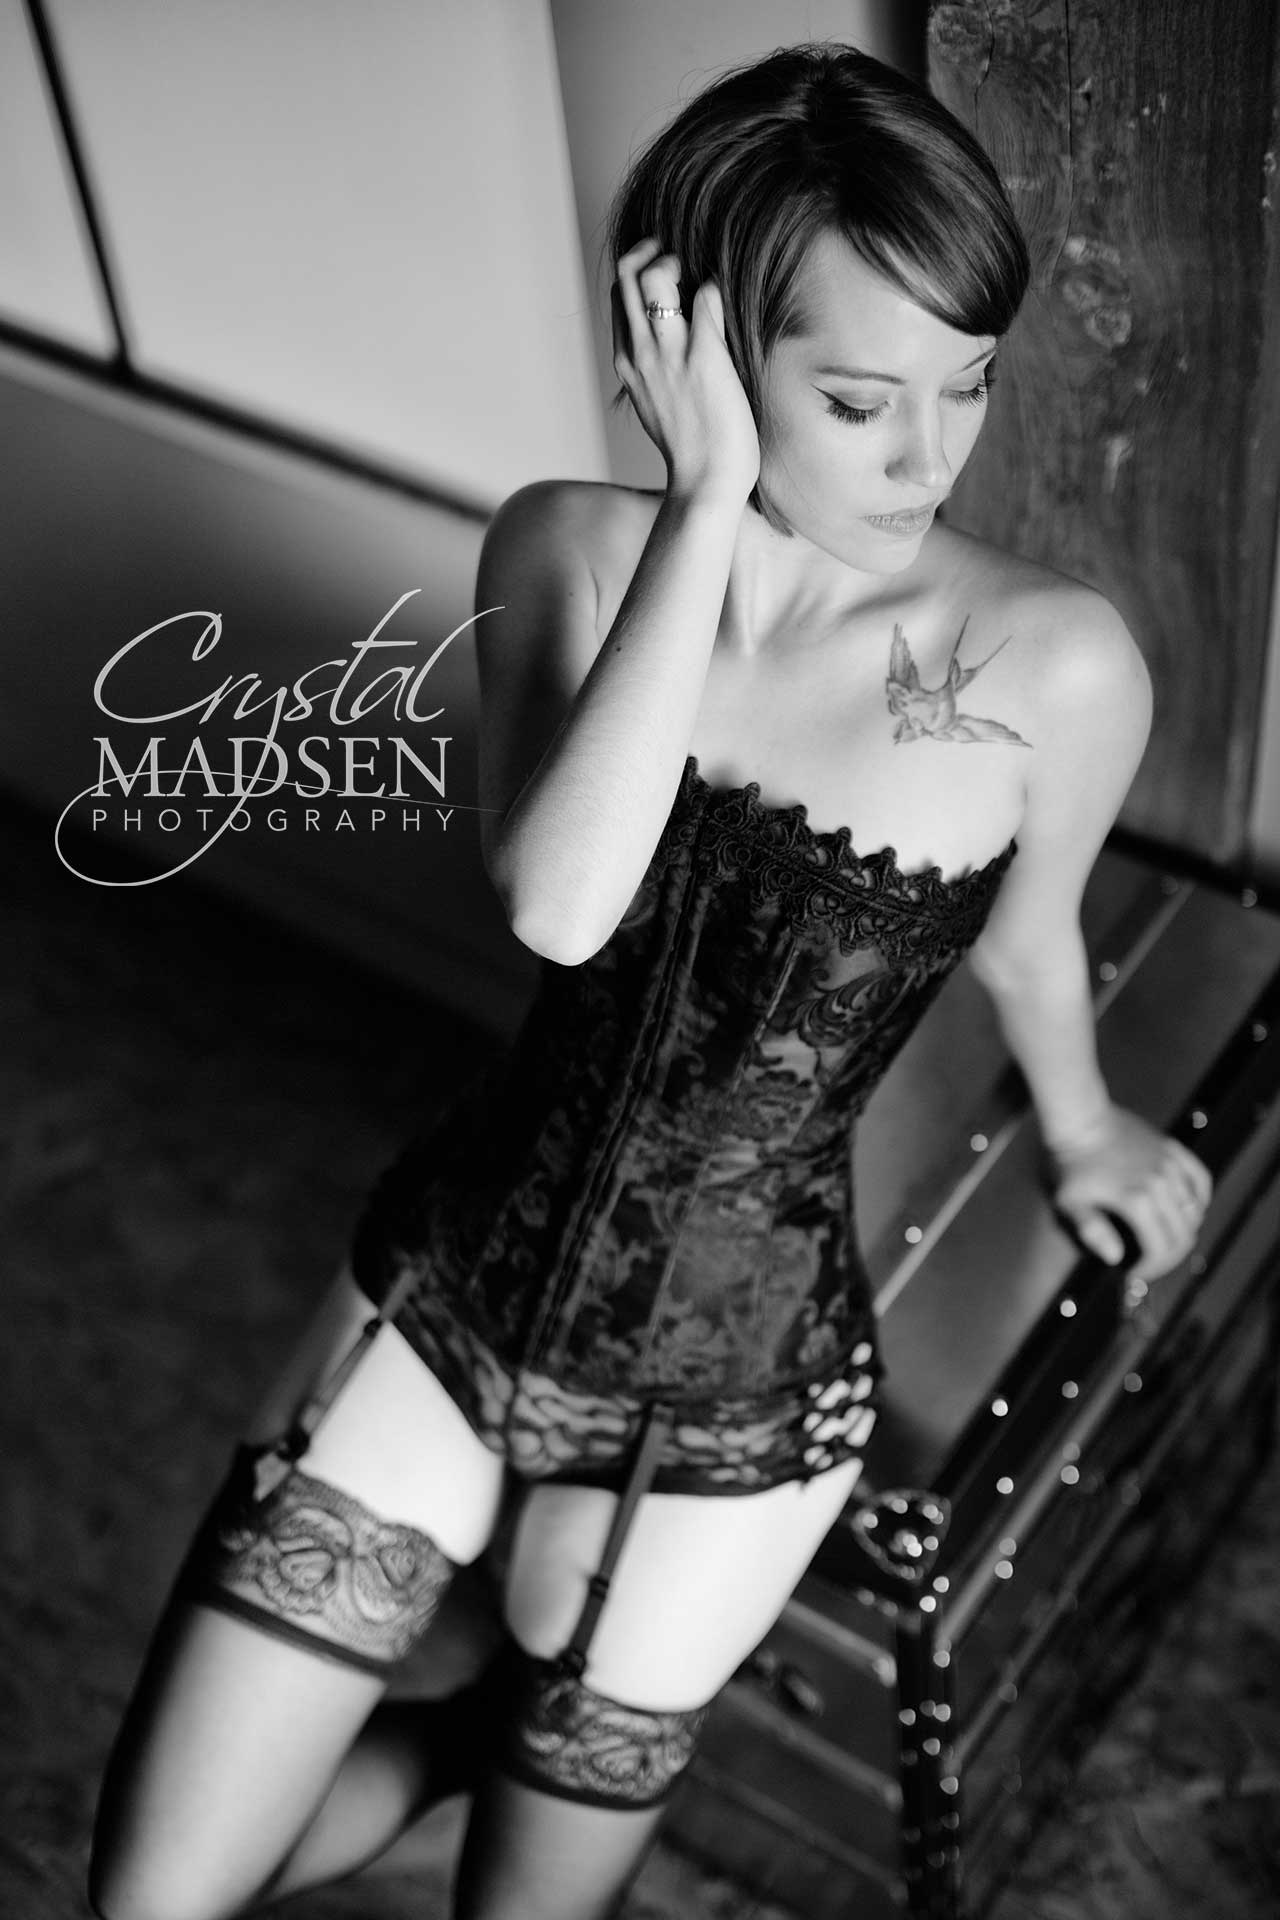 spokanes-top-boudoir-photography-09